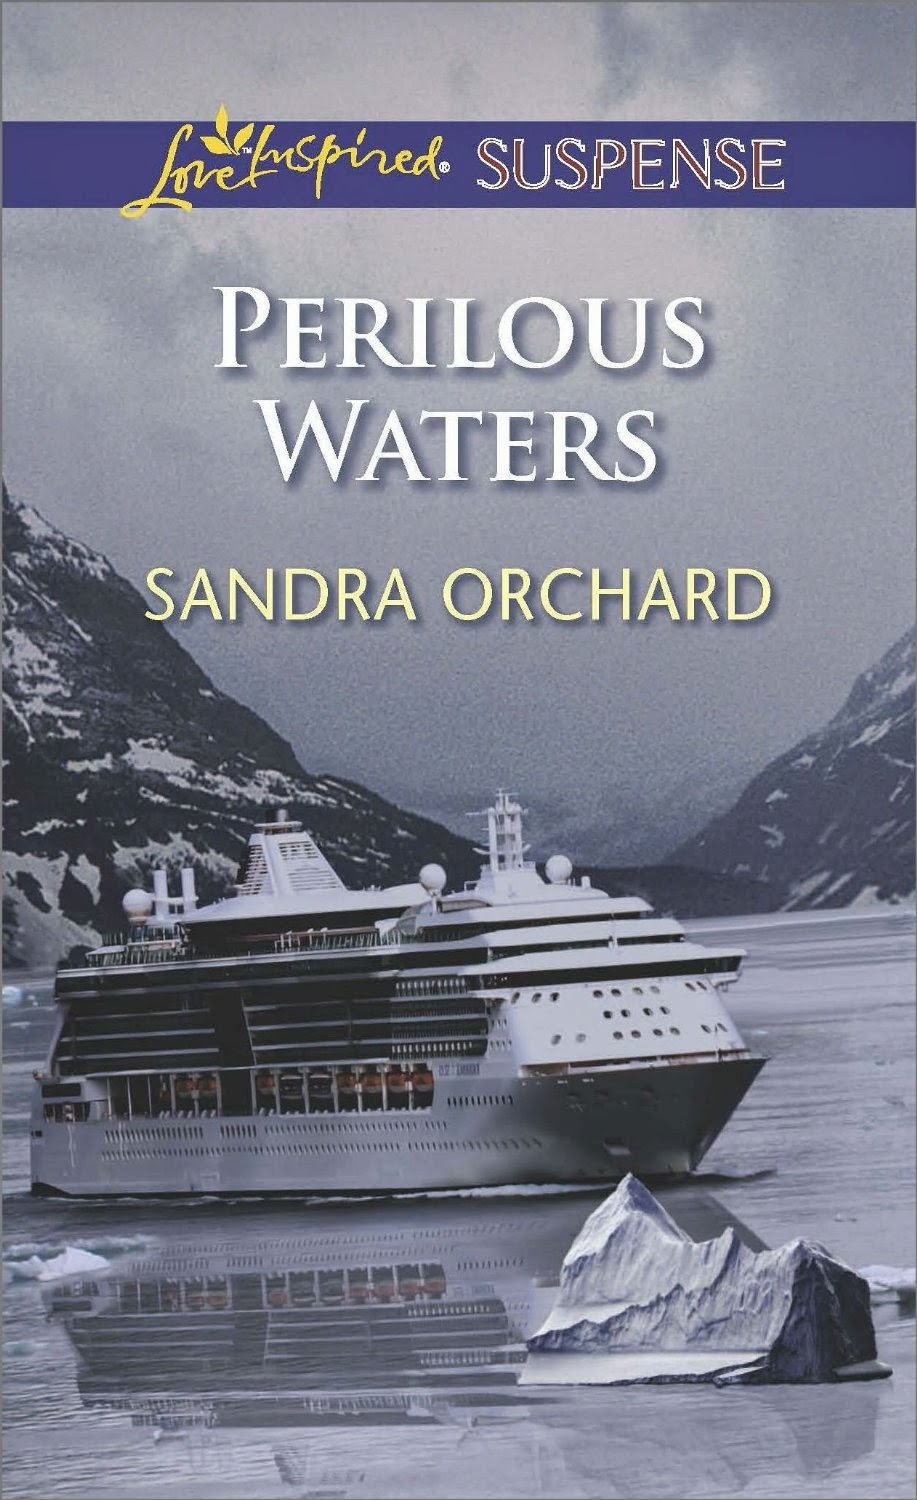 http://www.amazon.com/Perilous-Waters-Love-Inspired-Suspense-ebook/dp/B00FTQI0DY/ref=sr_1_1?s=digital-text&ie=UTF8&qid=1400243727&sr=1-1&keywords=perilous+waters